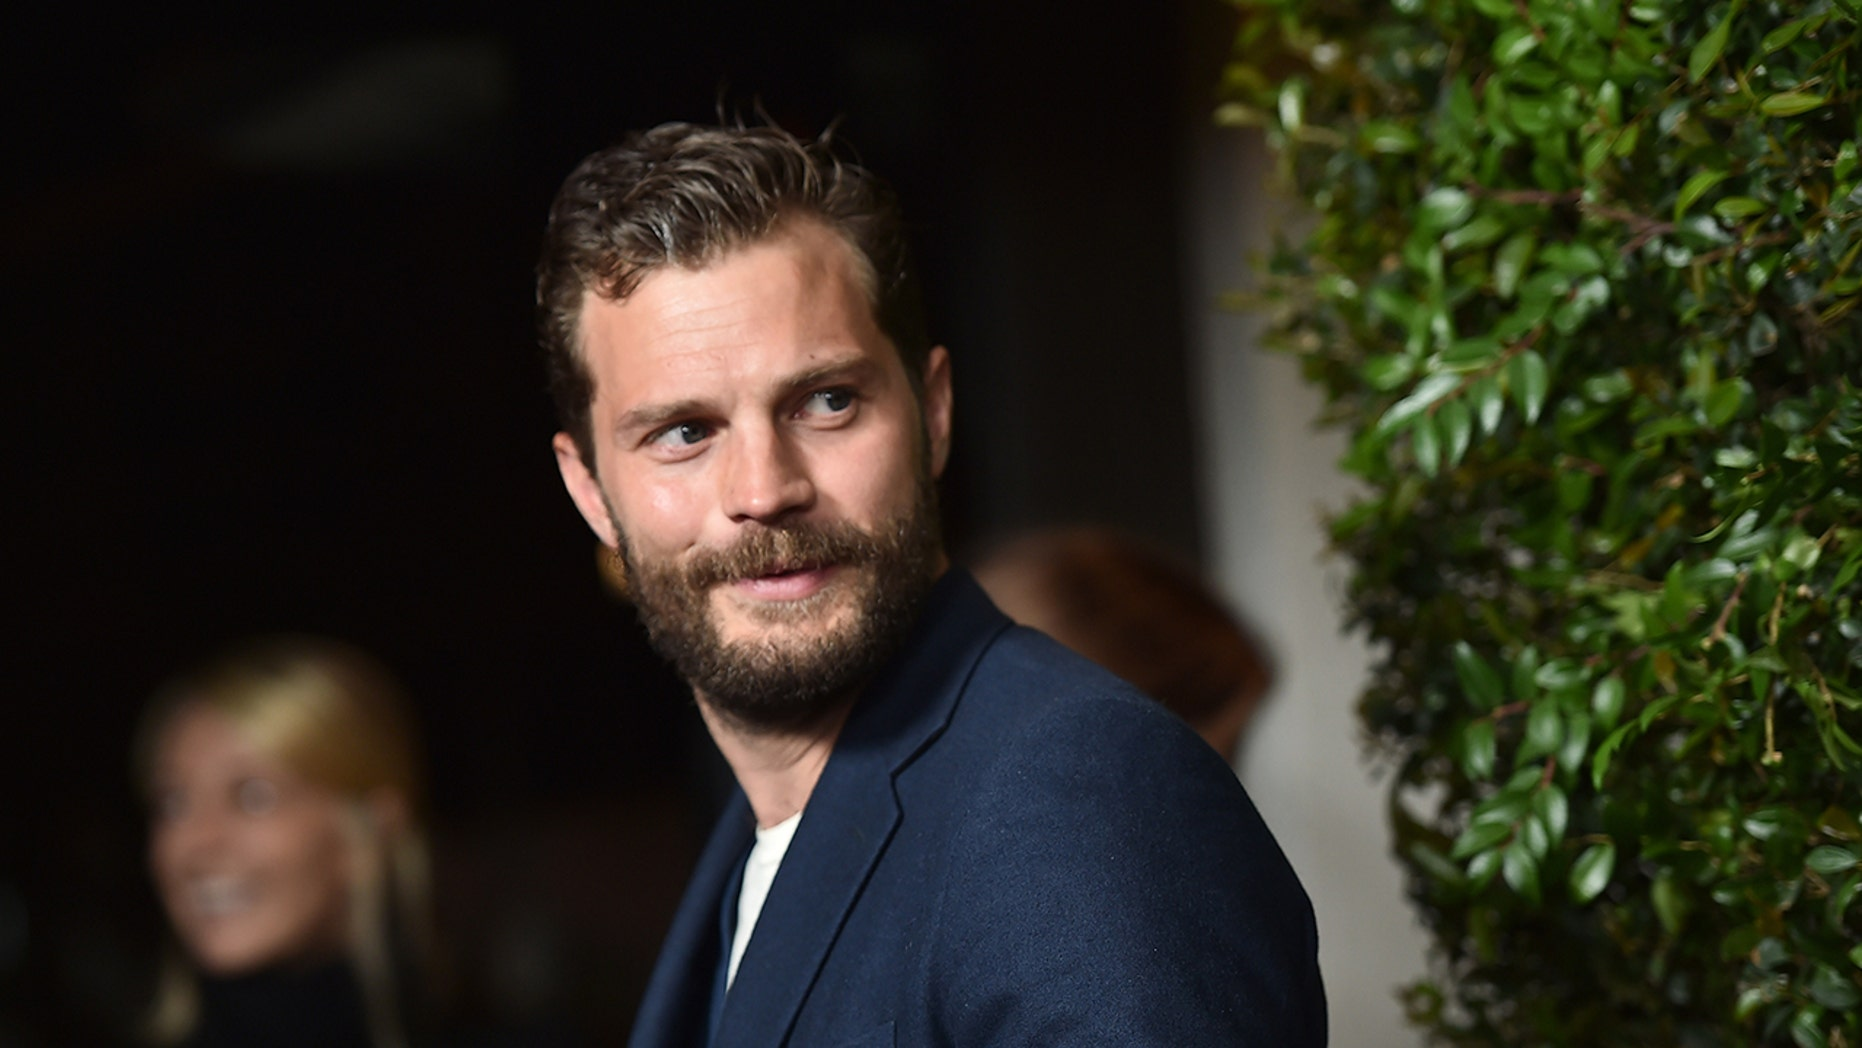 Actor and model Jamie Dornan lost his mother to pancreatic cancer.